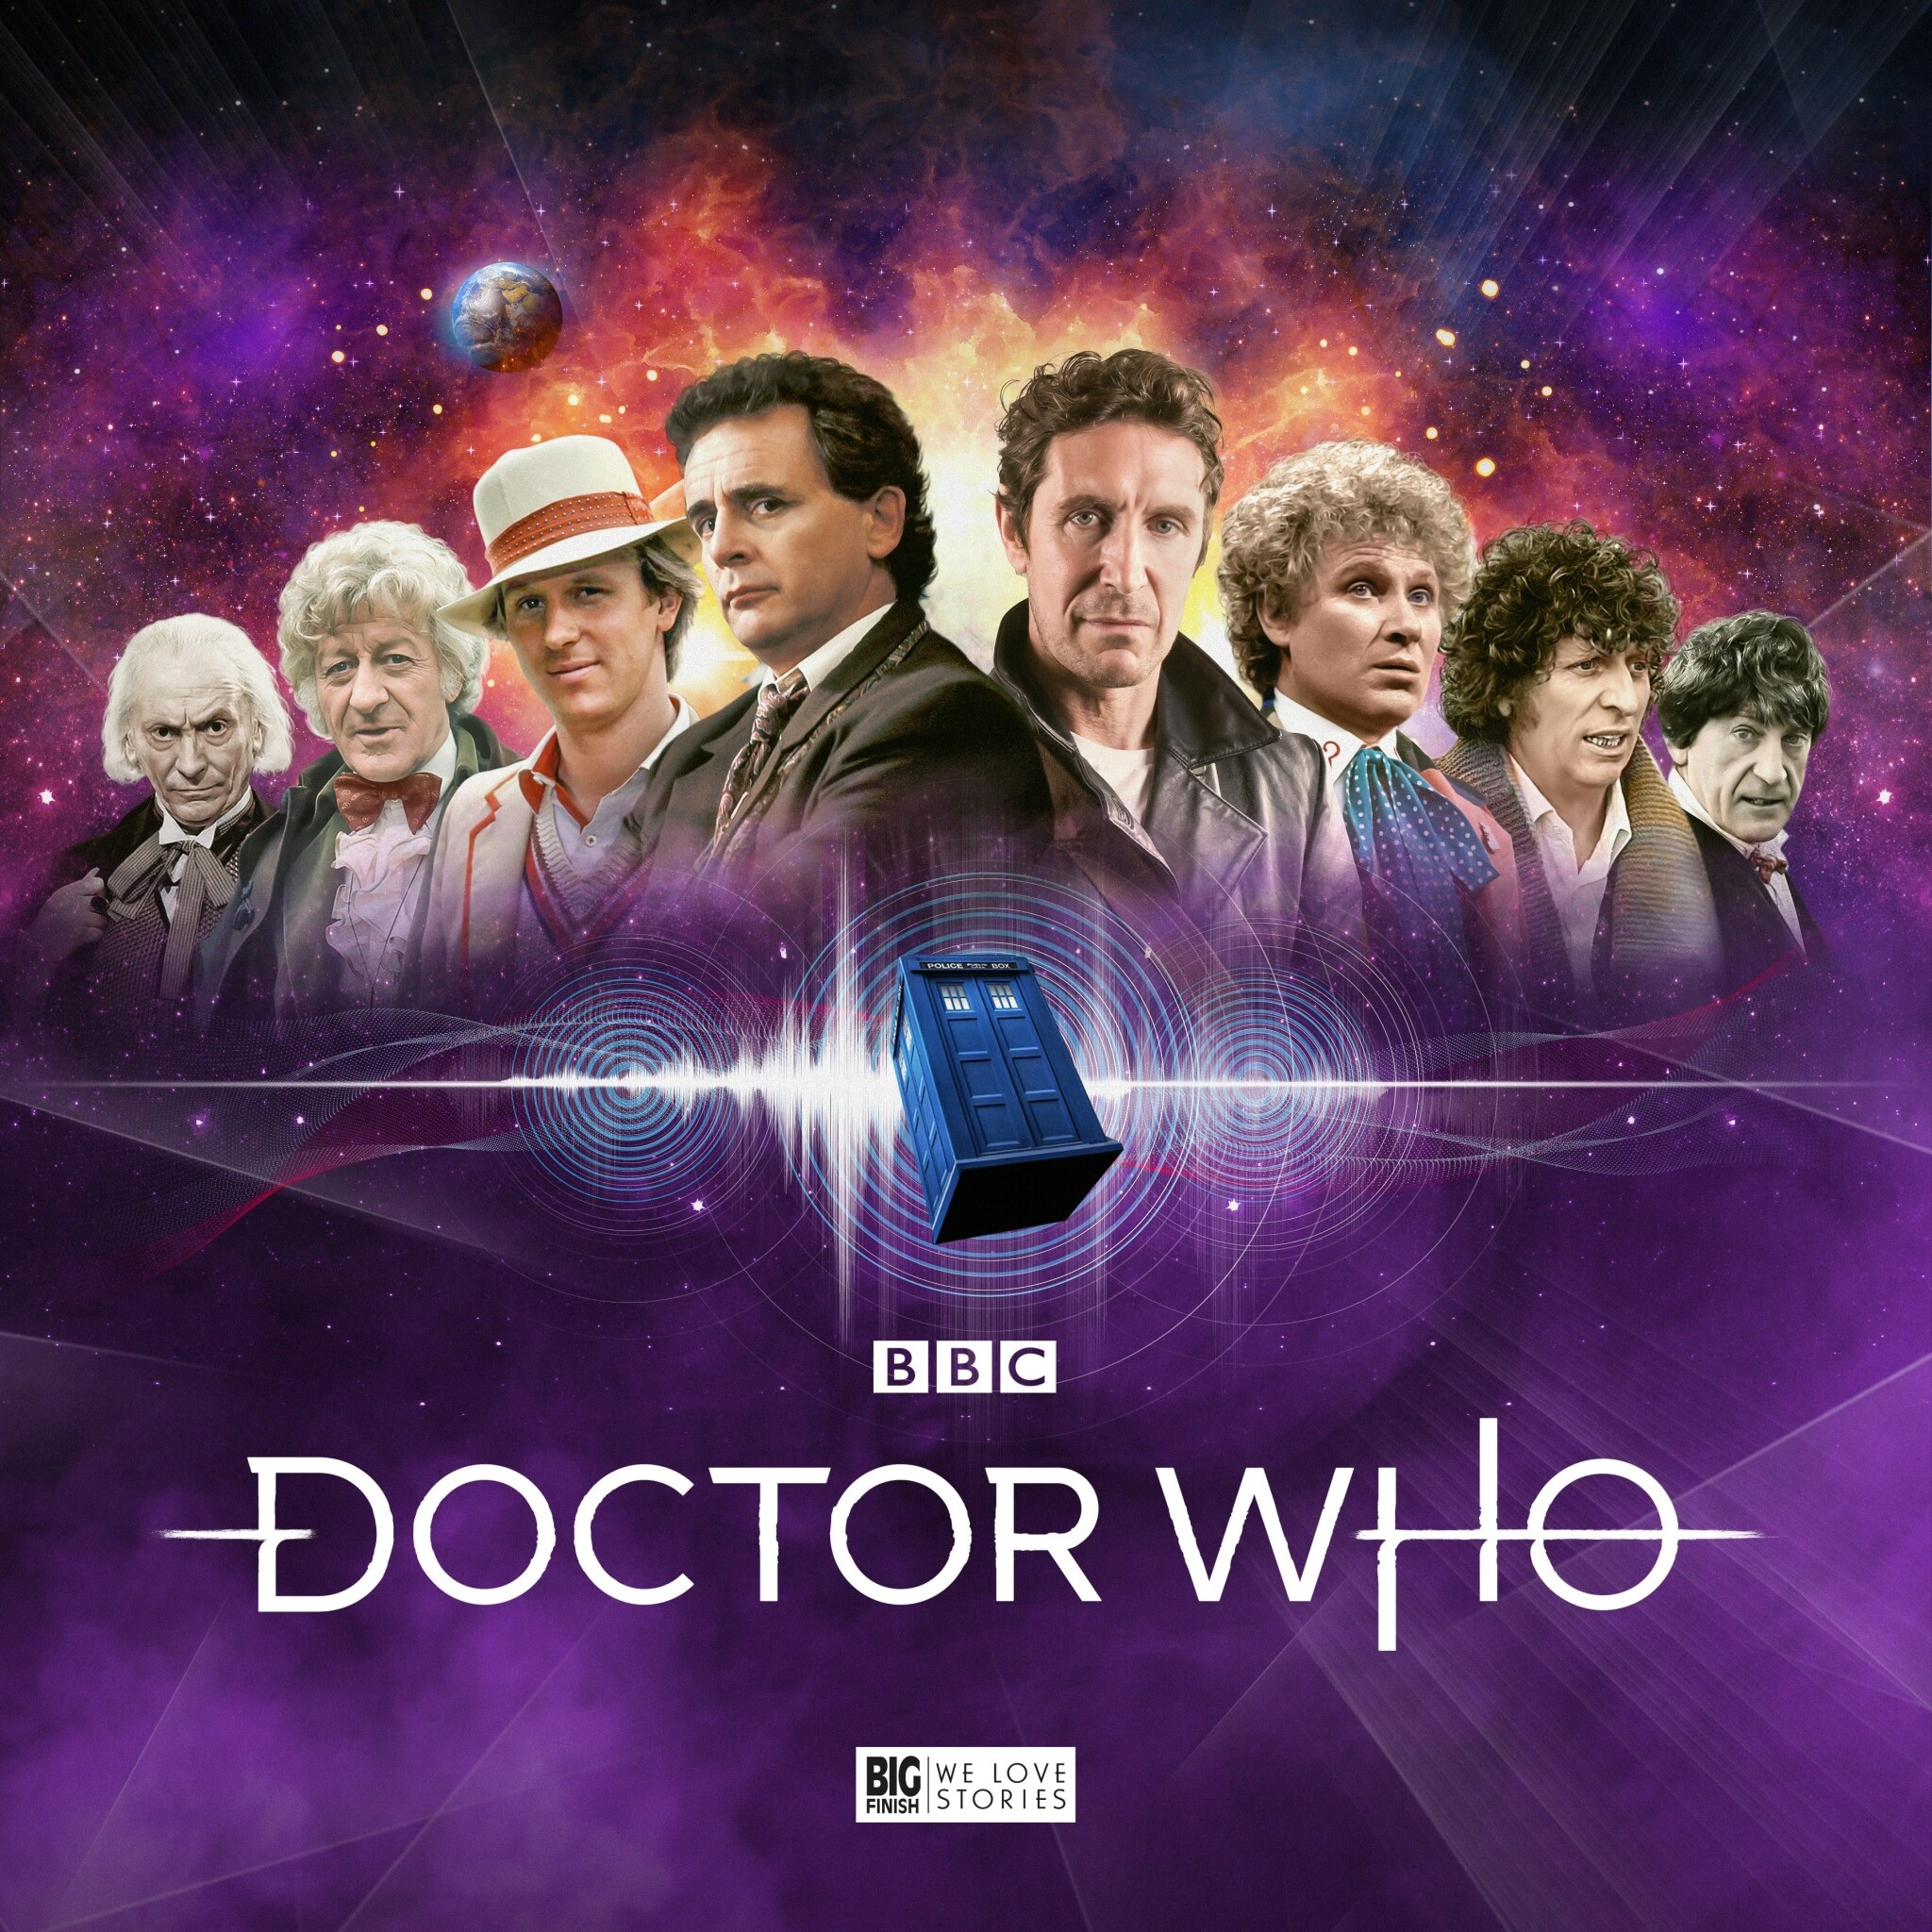 Big Finish Reveals Upcoming Producers for Peladon and First, Second, and Third Doctor Adventures